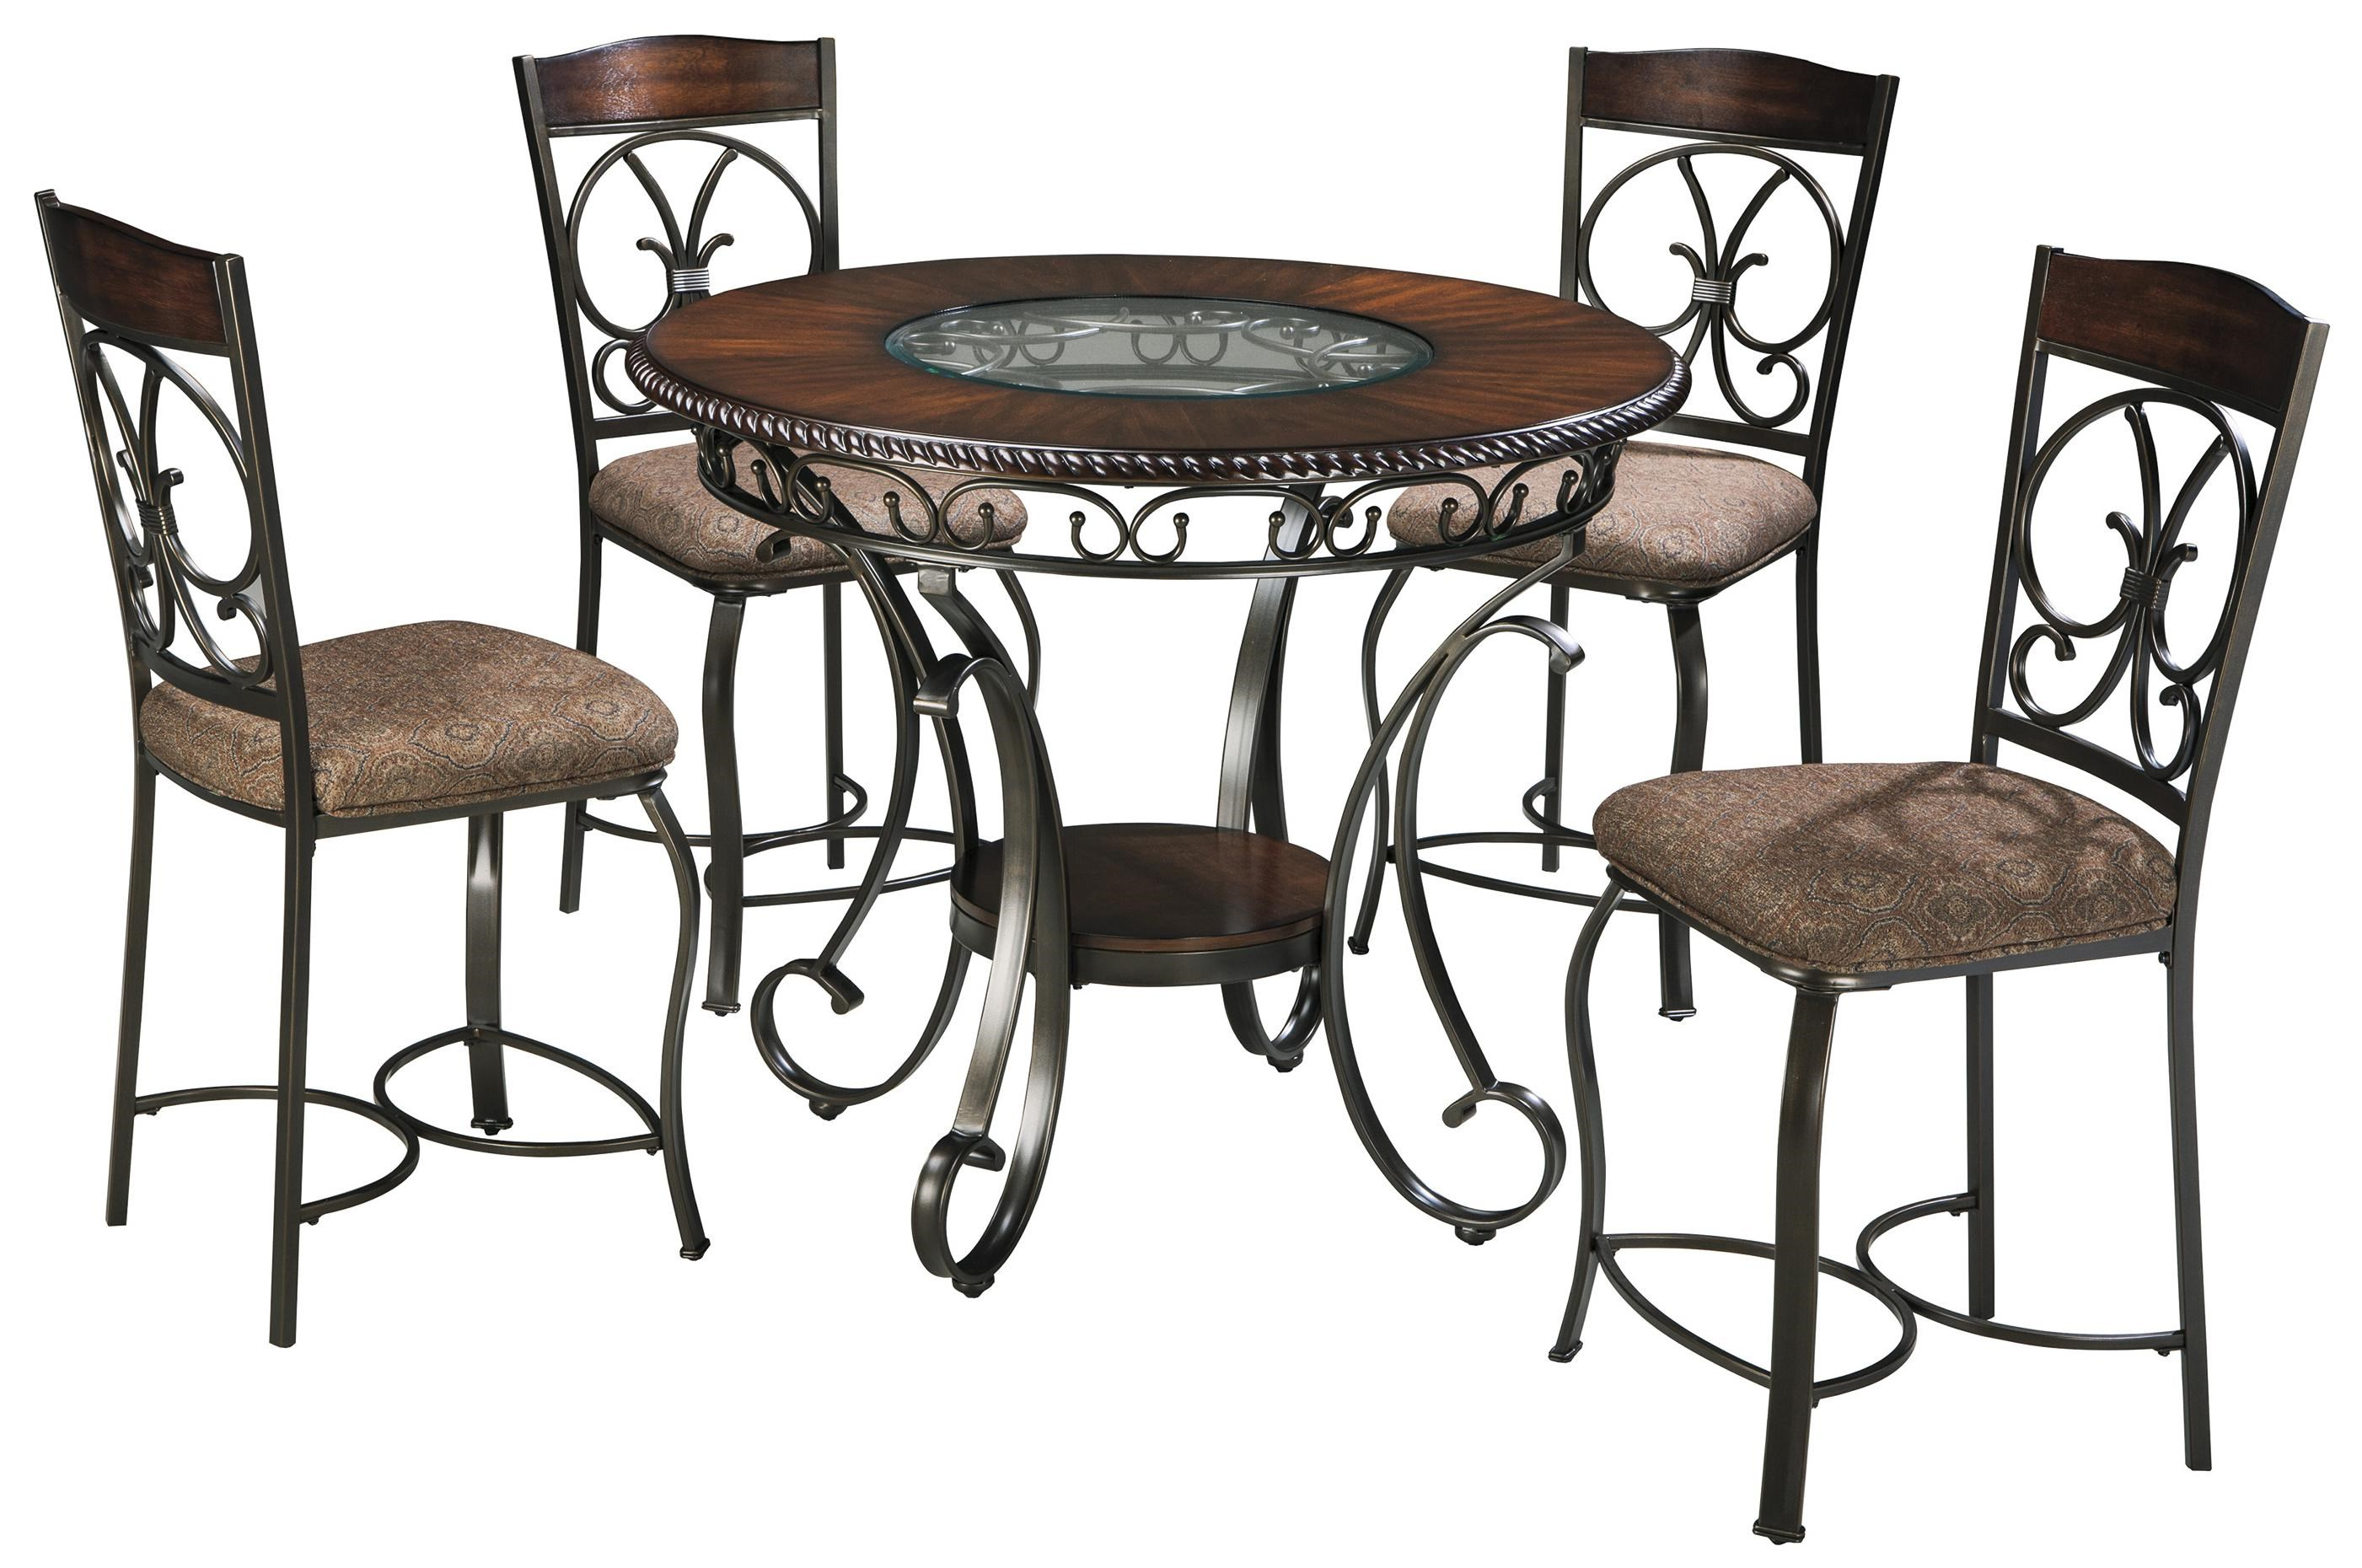 Attrayant Signature Design By Ashley GlambreyRound Counter Table And Barstool Set ...